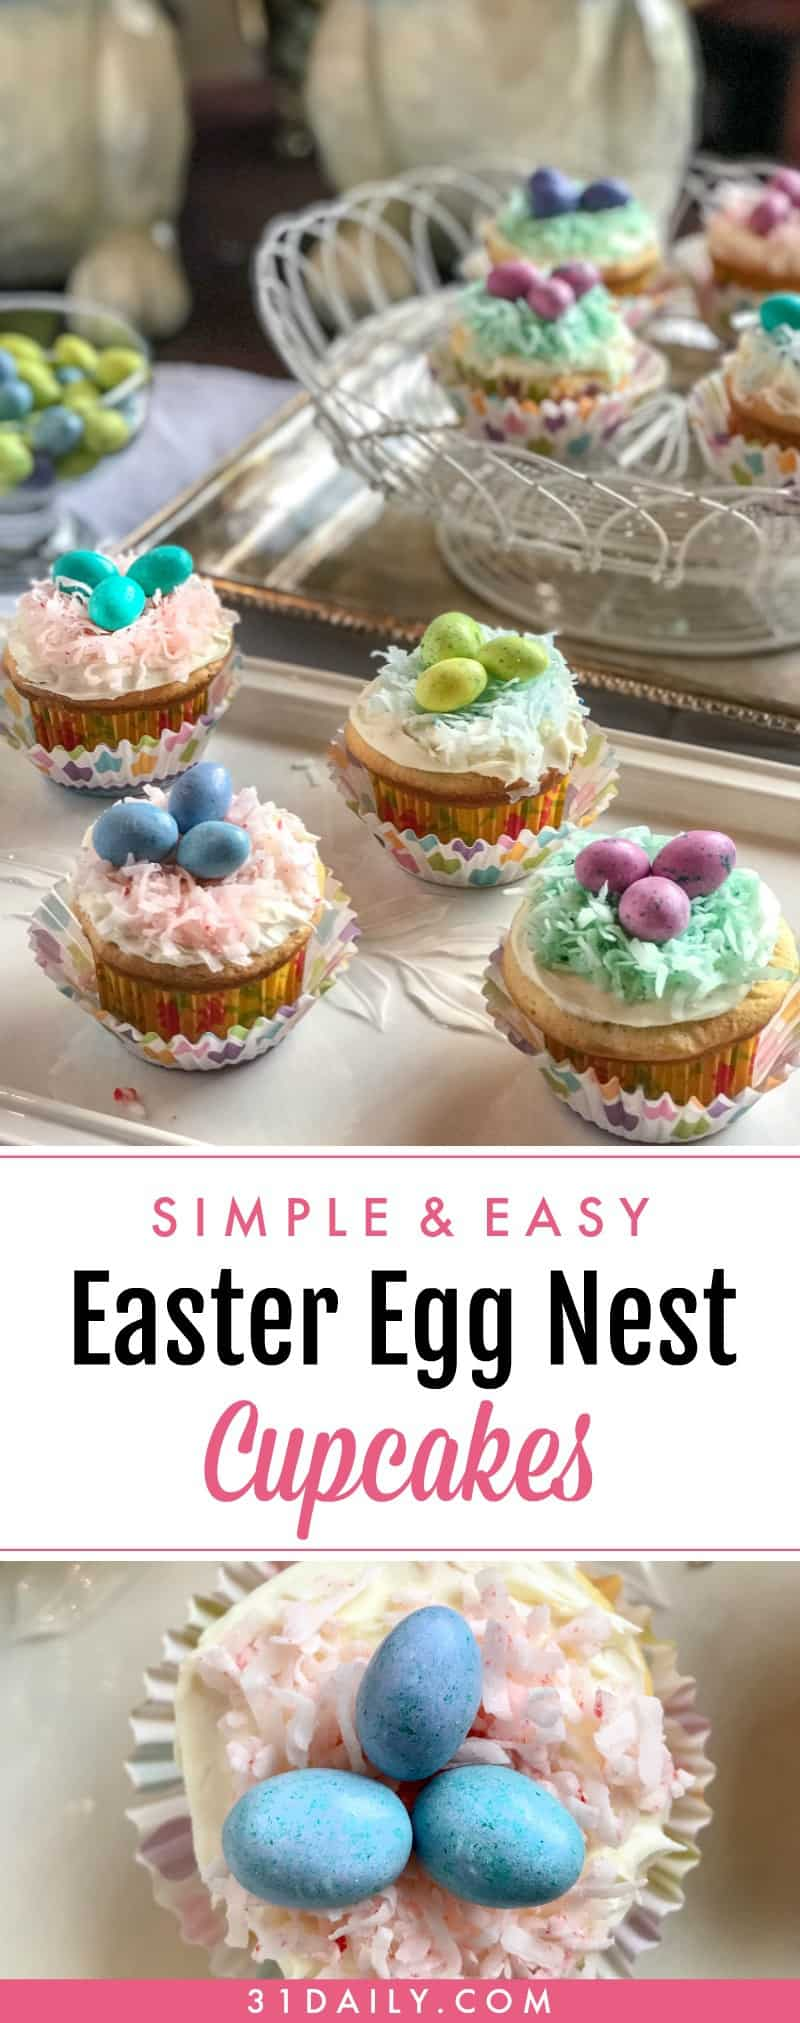 Easter Egg Nest Cupcakes Make Darling and Easy Treats   31Daily.com